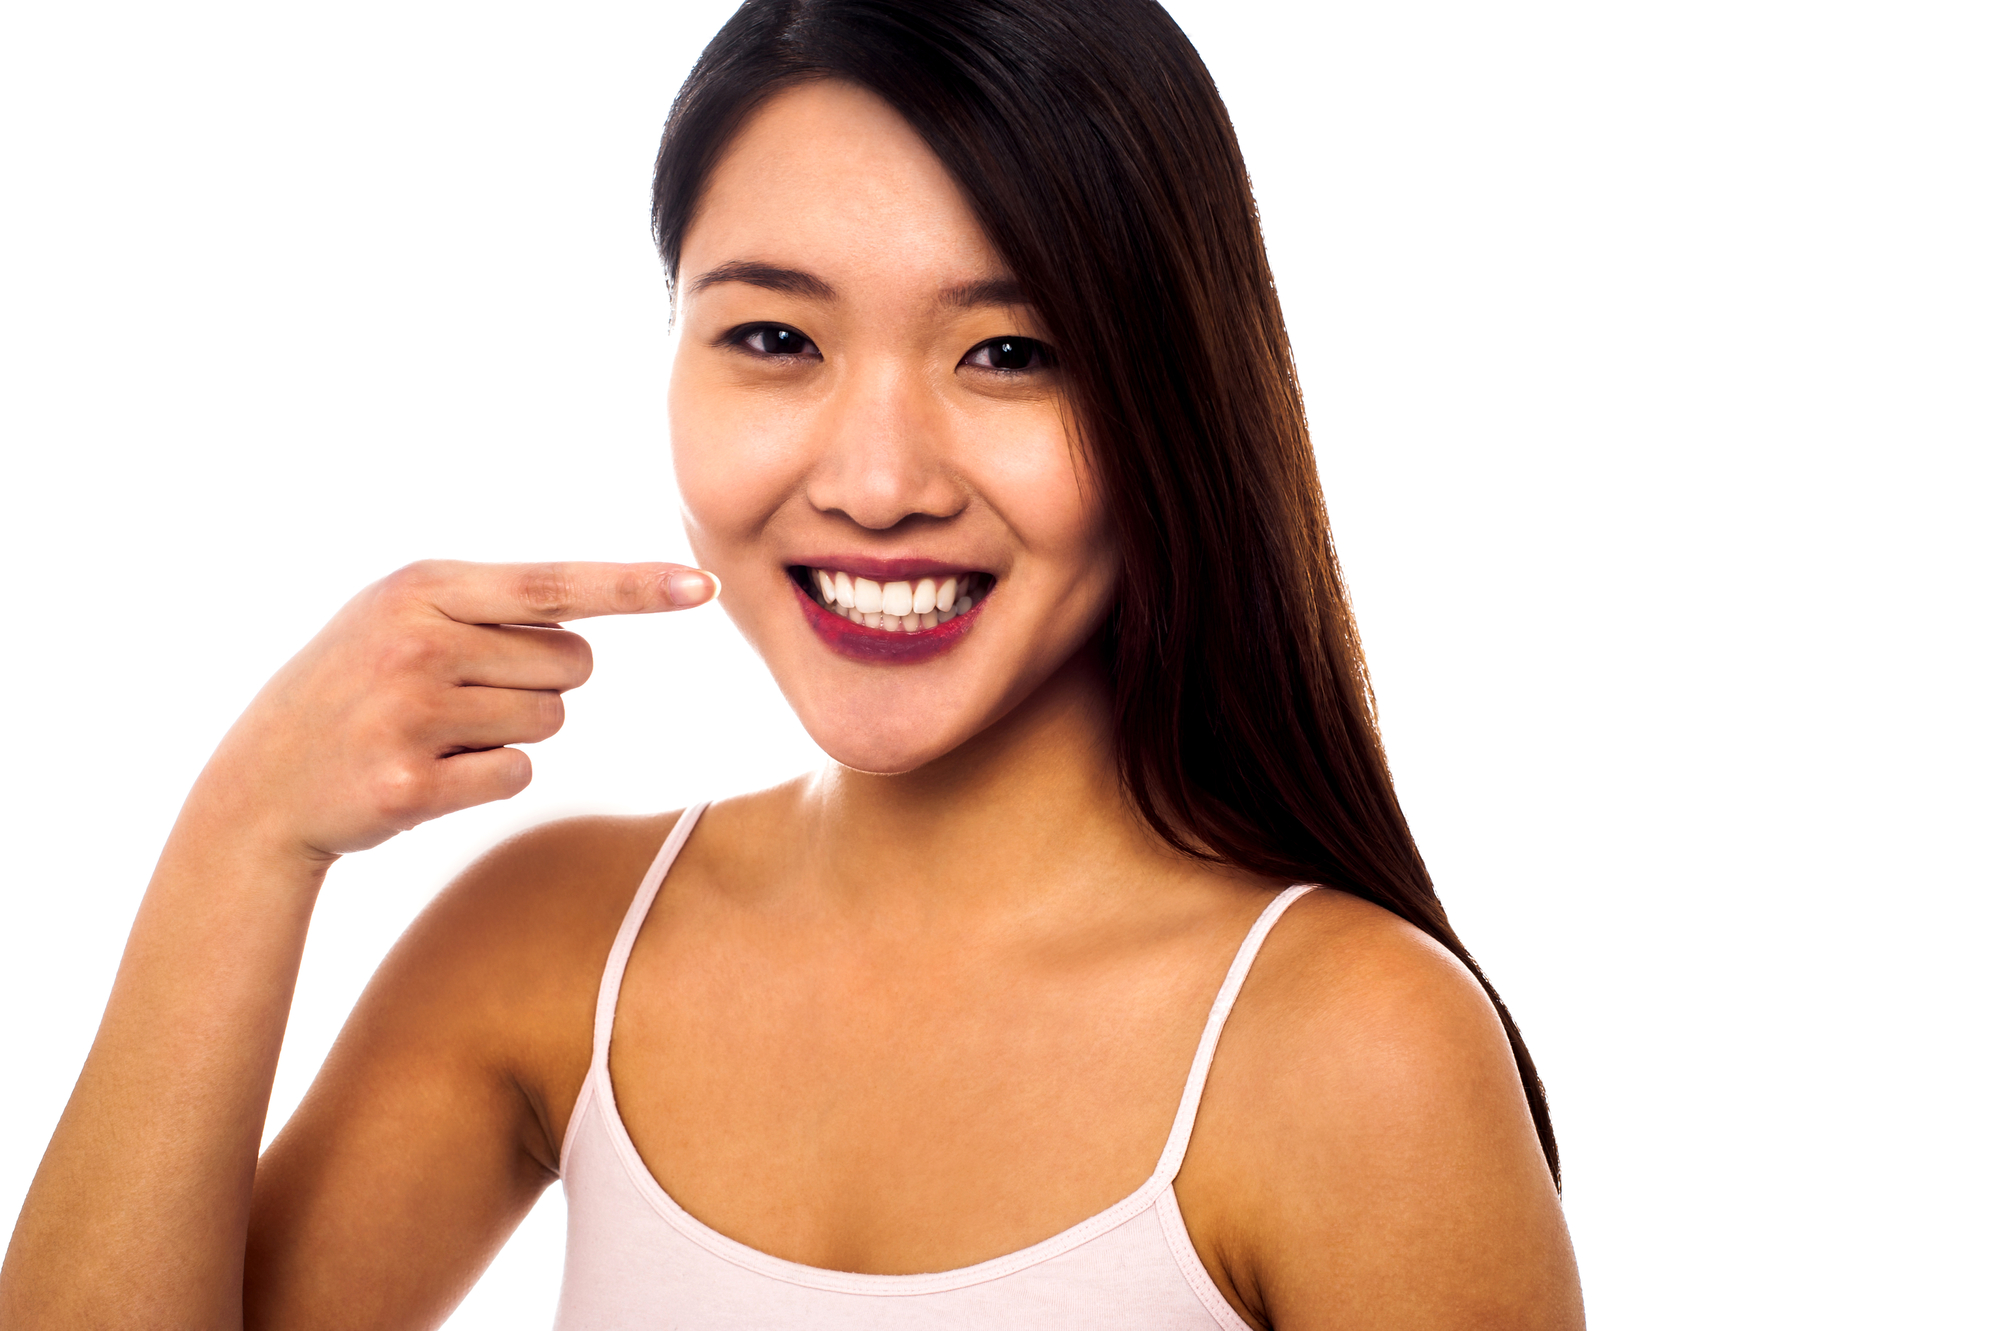 How much do porcelain veneers cost?